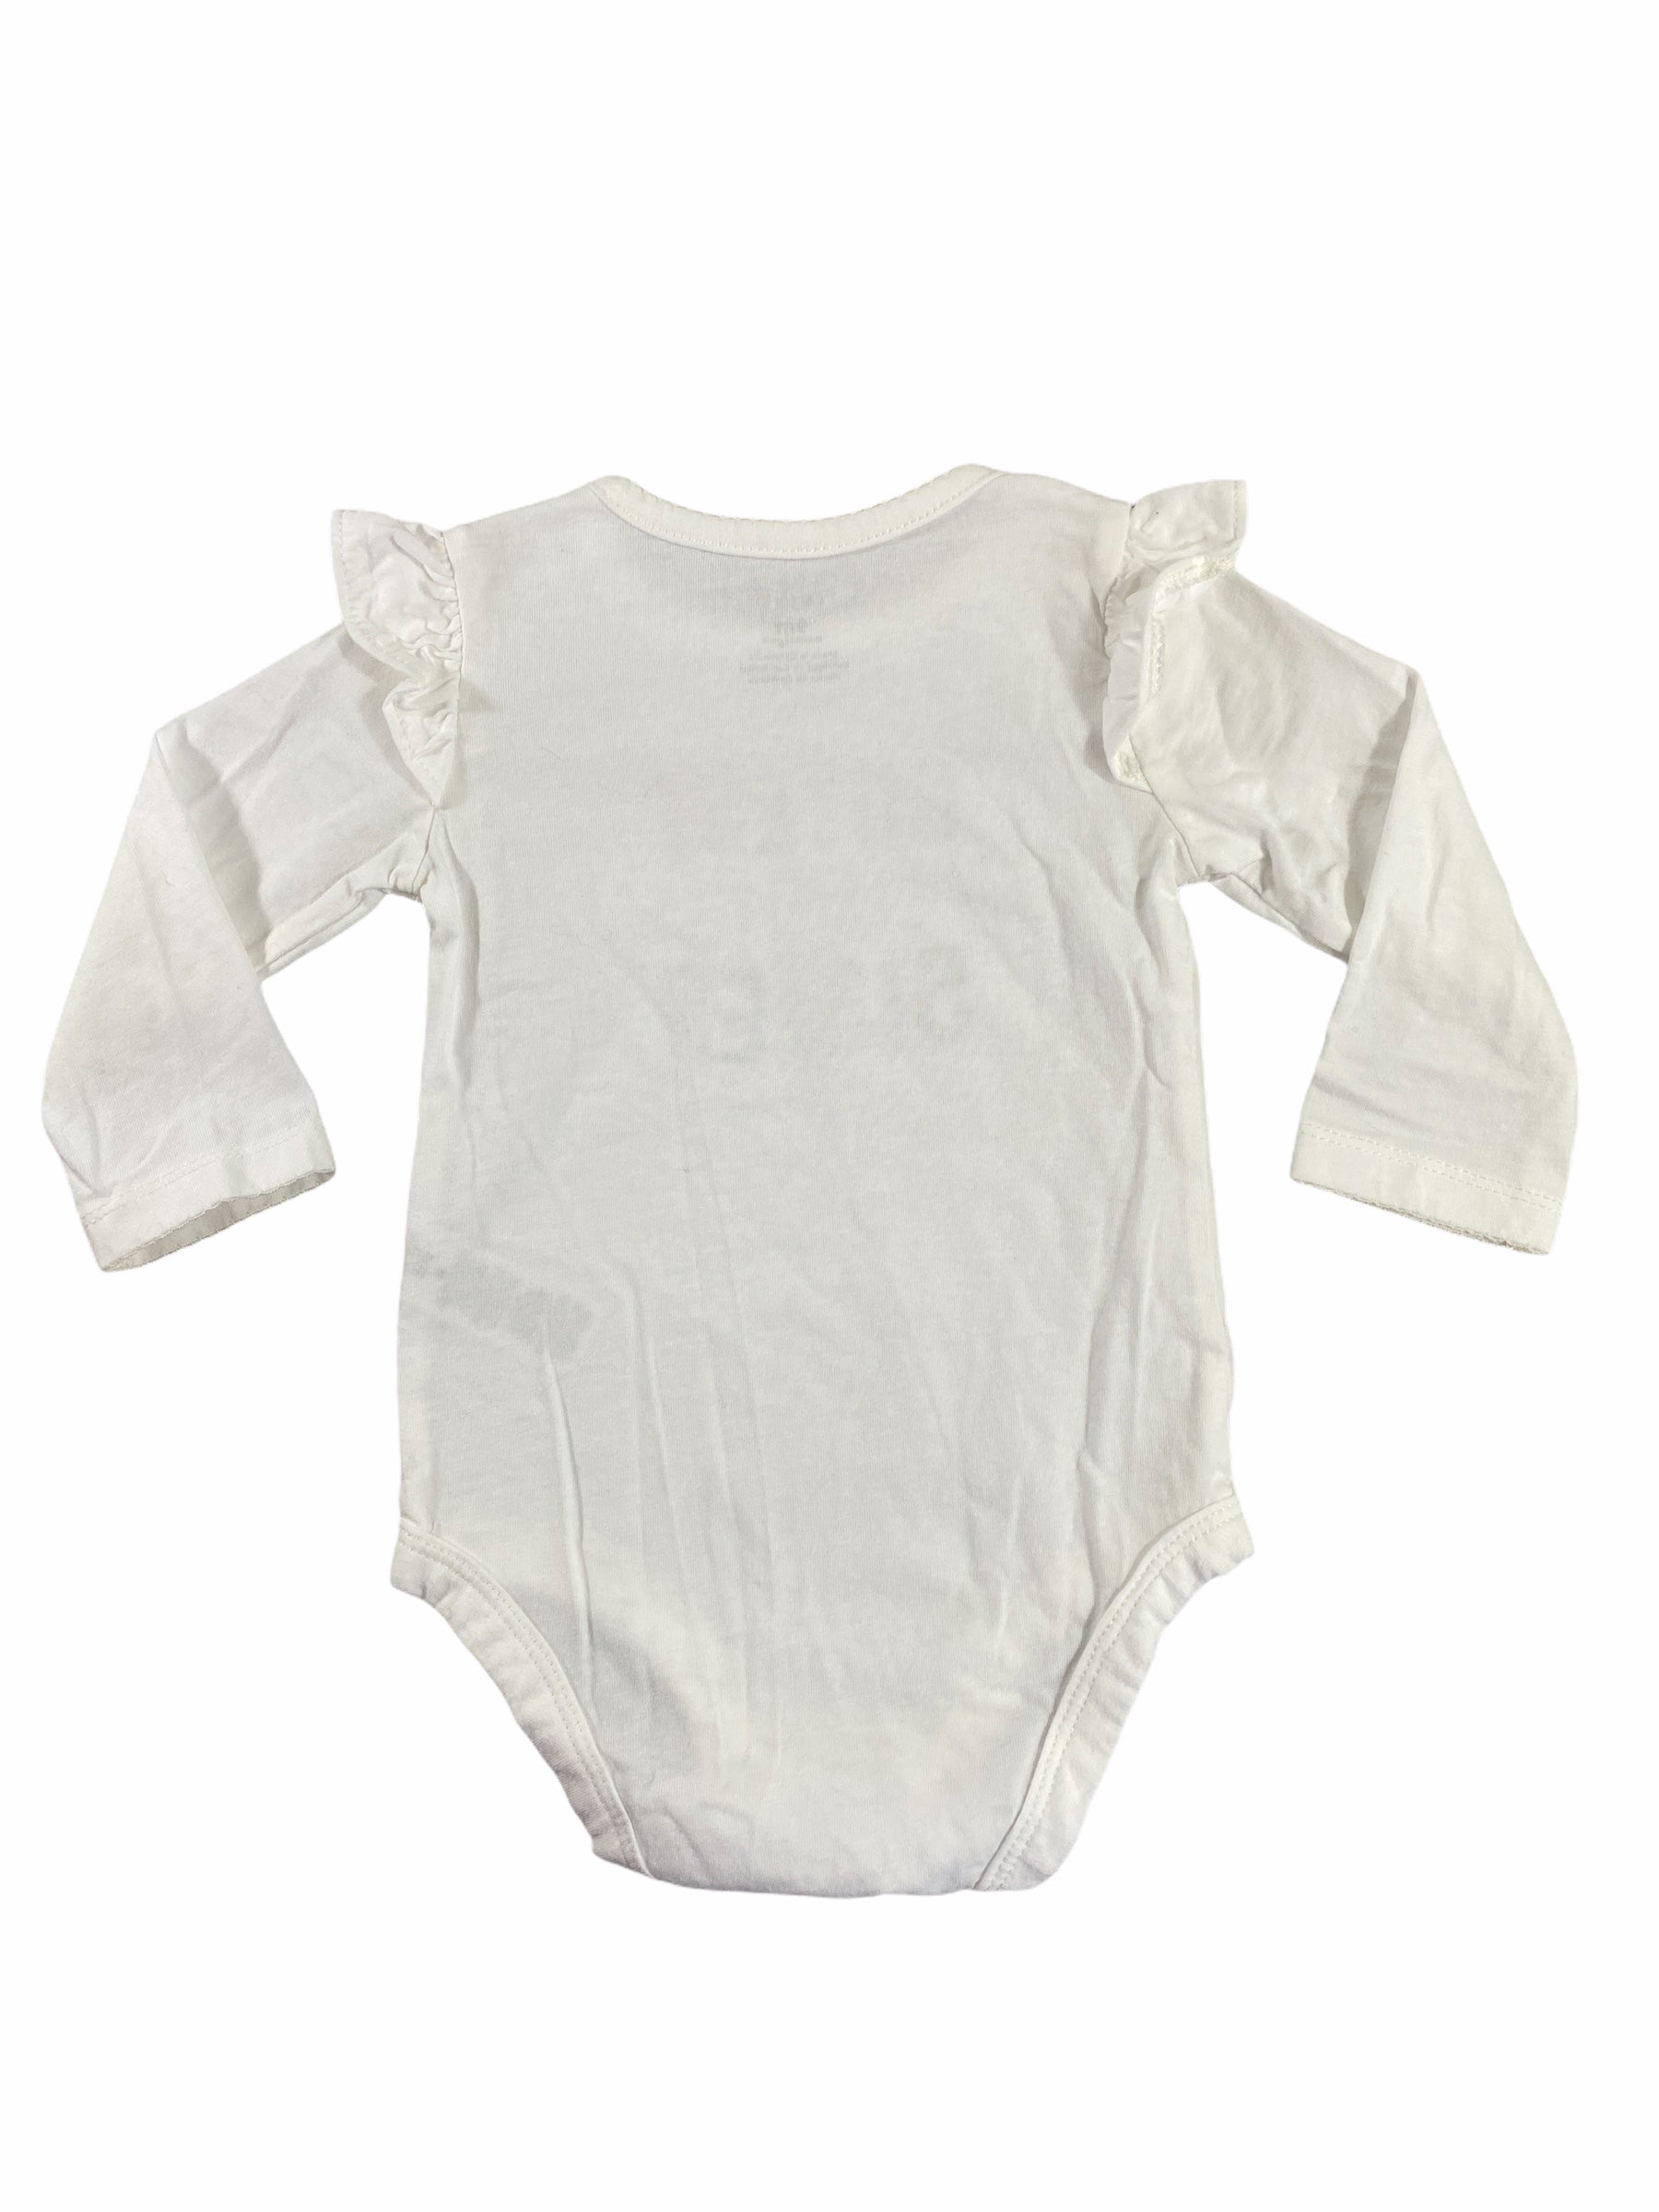 "Carter's Long Sleeve White ""Cutest Little Sister"" Onesie (9M Girls)"